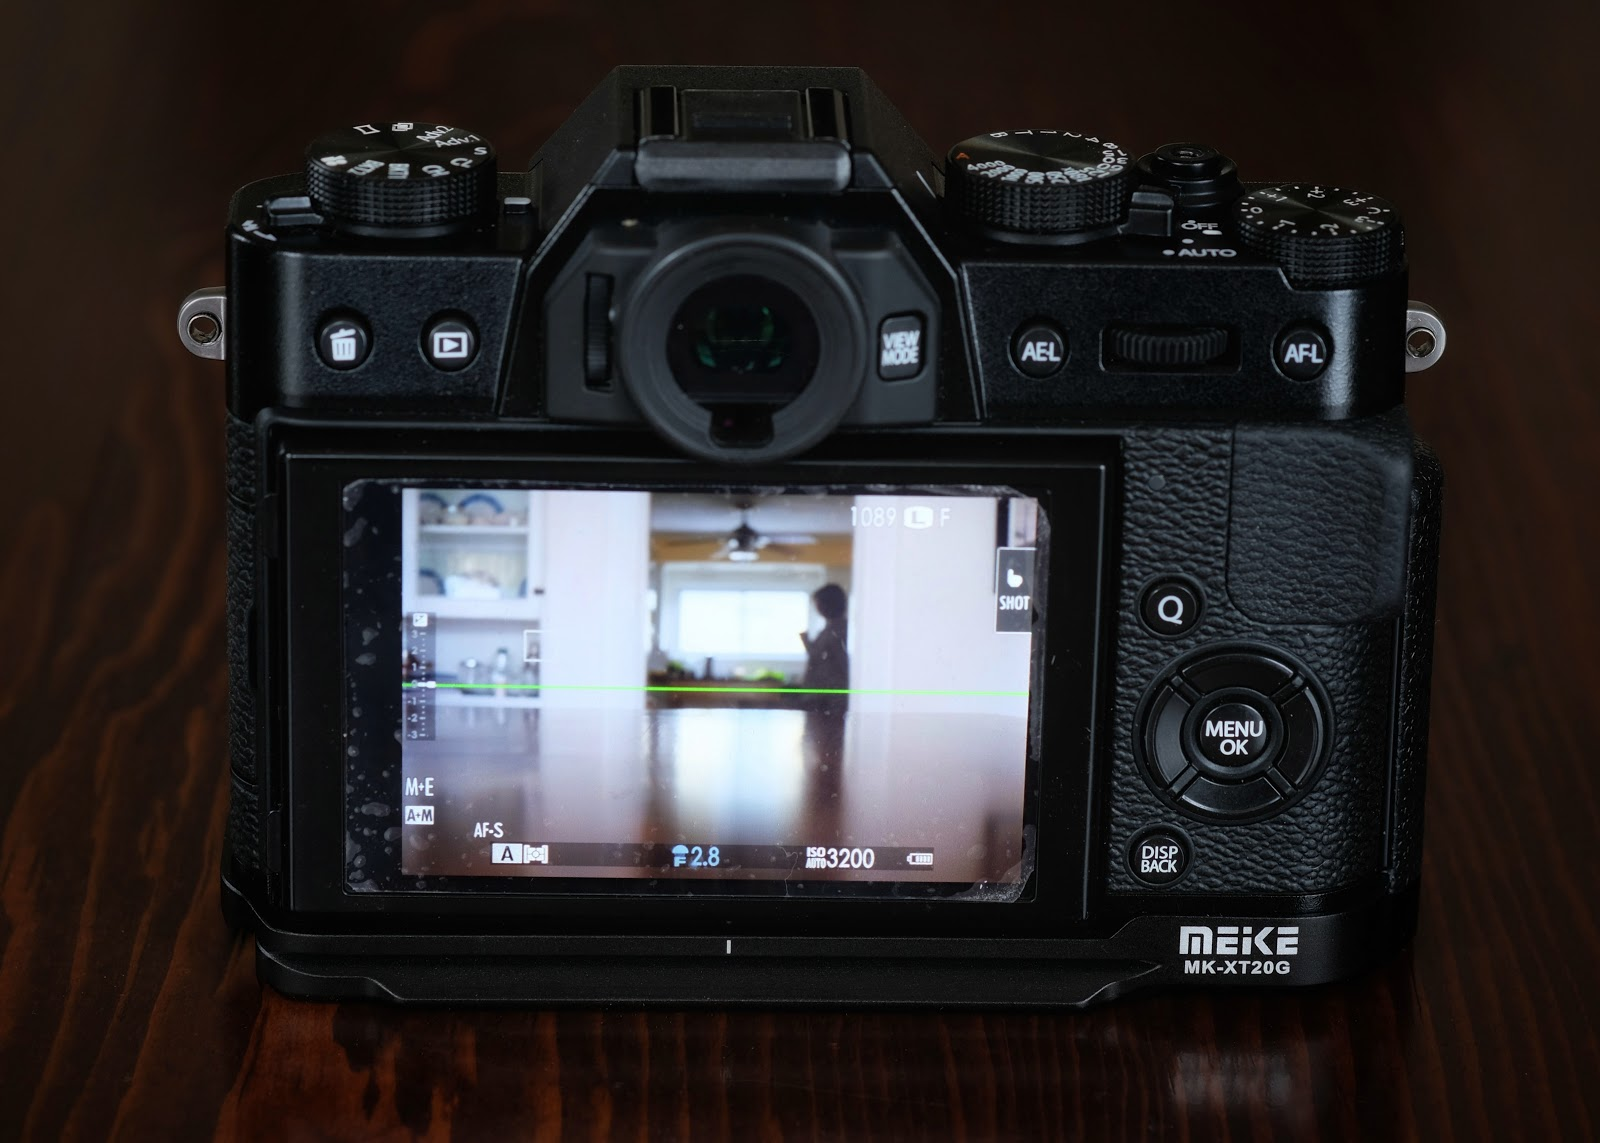 Meike Xt20g Hand Grip Review Michael St Jean Photography Screen Guard Fujifilm Xt10 Ignore The Poorly Cut To Size And Applied Nintendo Ds